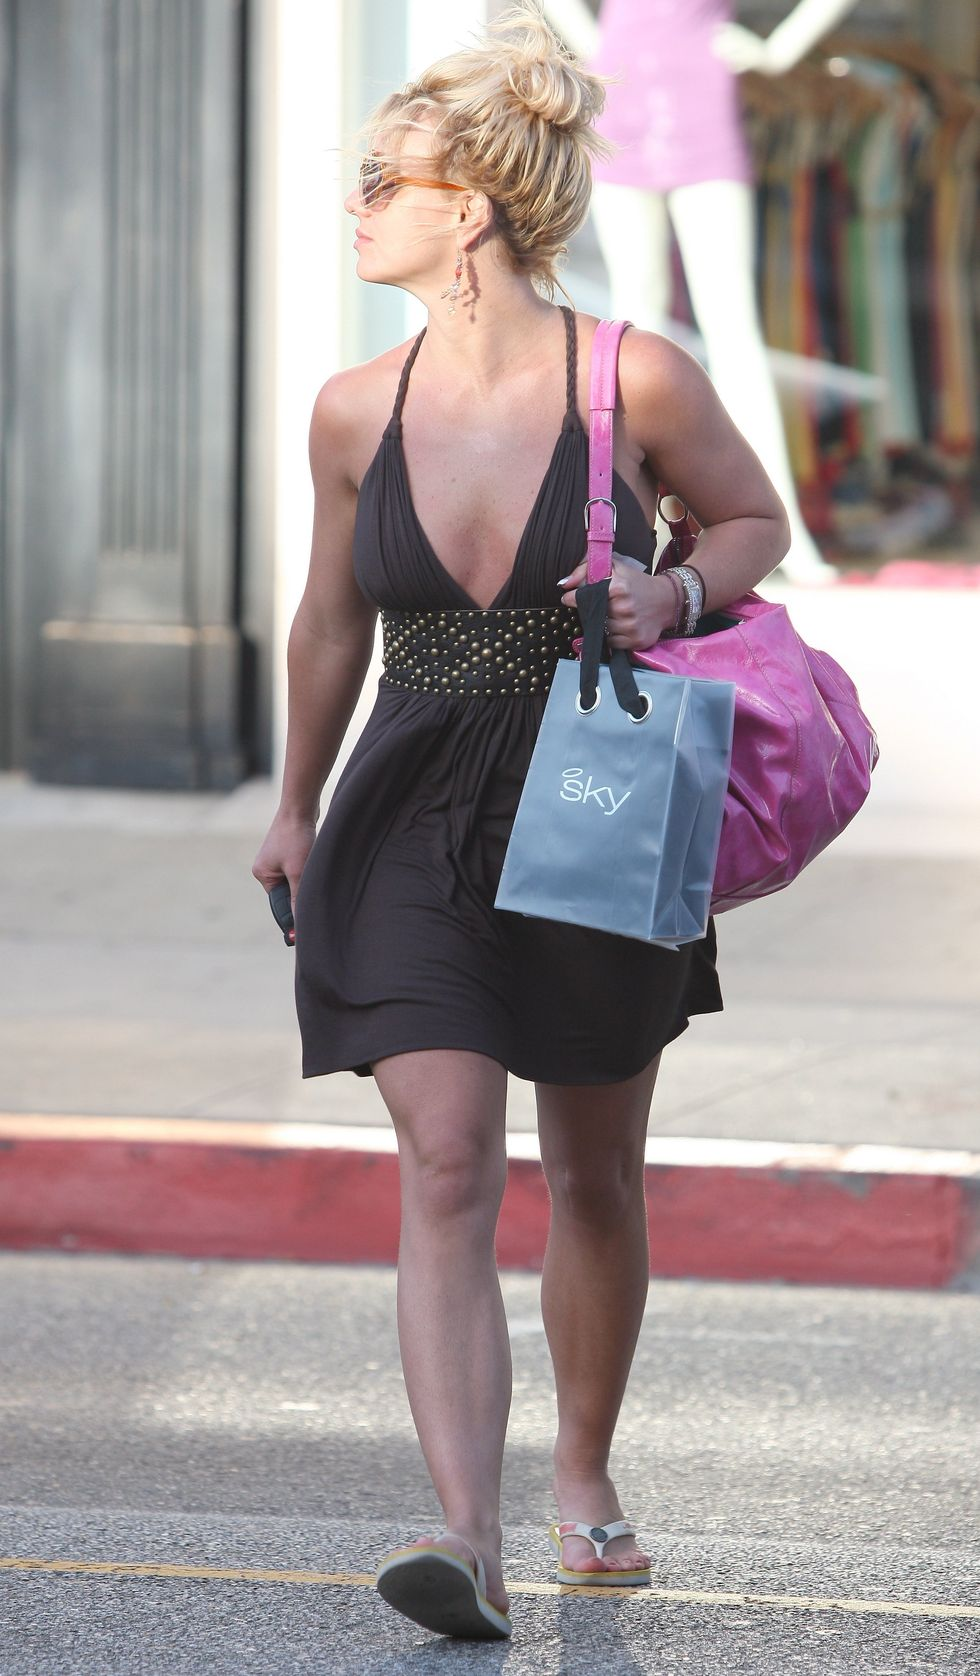 Britney Spears' Best Candids | toofab.com